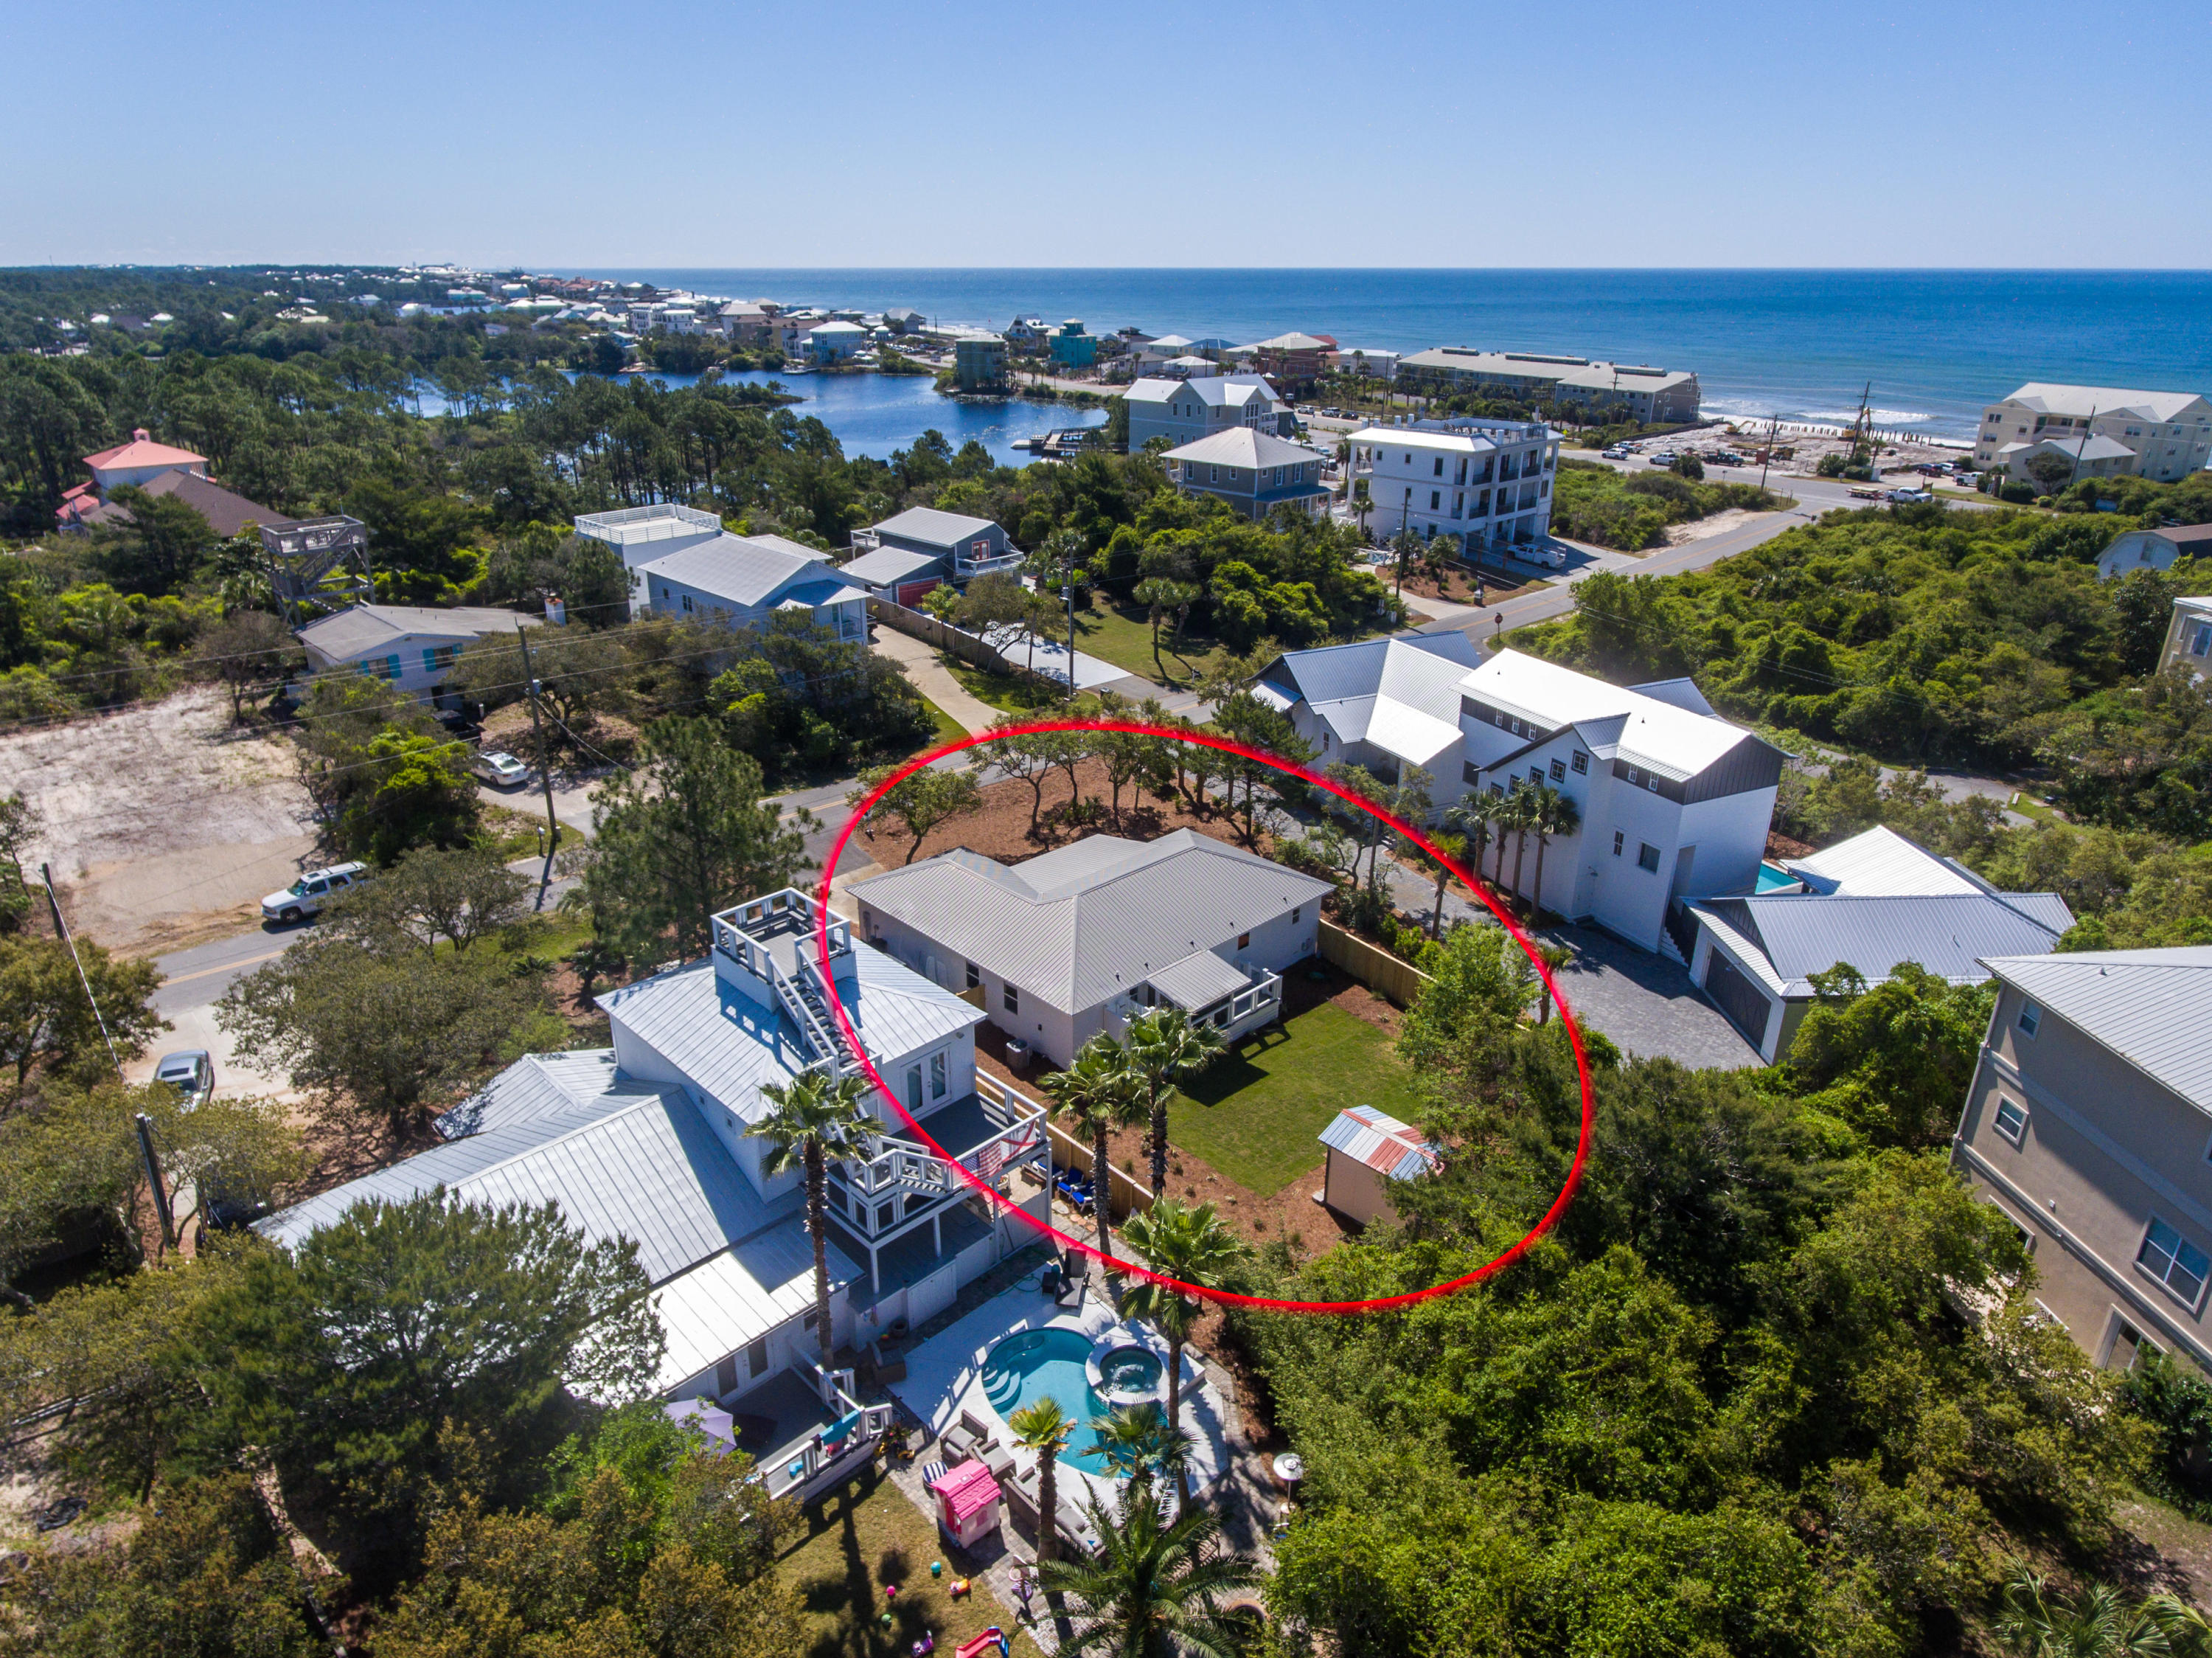 WEST END 30A! ONLY ONE BLOCK OFF THE BEACH WITH NEW ACCESS ACROSS FROM STINKY'S FISH CAMP. This adorable beach cottage on the west end of Scenic Highway 30-A is an ideal retreat for those looking for a wonderful lot with fenced back yard and room to add their own pool and potentially an additional structure as well. This home was completely remodeled in 2019 and offers 2 full bedrooms, 2 full bathrooms, open living/kitchen/dining, laundry room, screened porch in front and back of home as well as a 2 car garage. The opportunities are endless for this one but there is nothing that has to be done for you to come and enjoy it just how it is for years to come. Only 1 mile to Gulf Place/Shunk Gulley, Stinky's Fish Camp just one block away and Santa Rosa Golf and Beach Club is just one mile too!